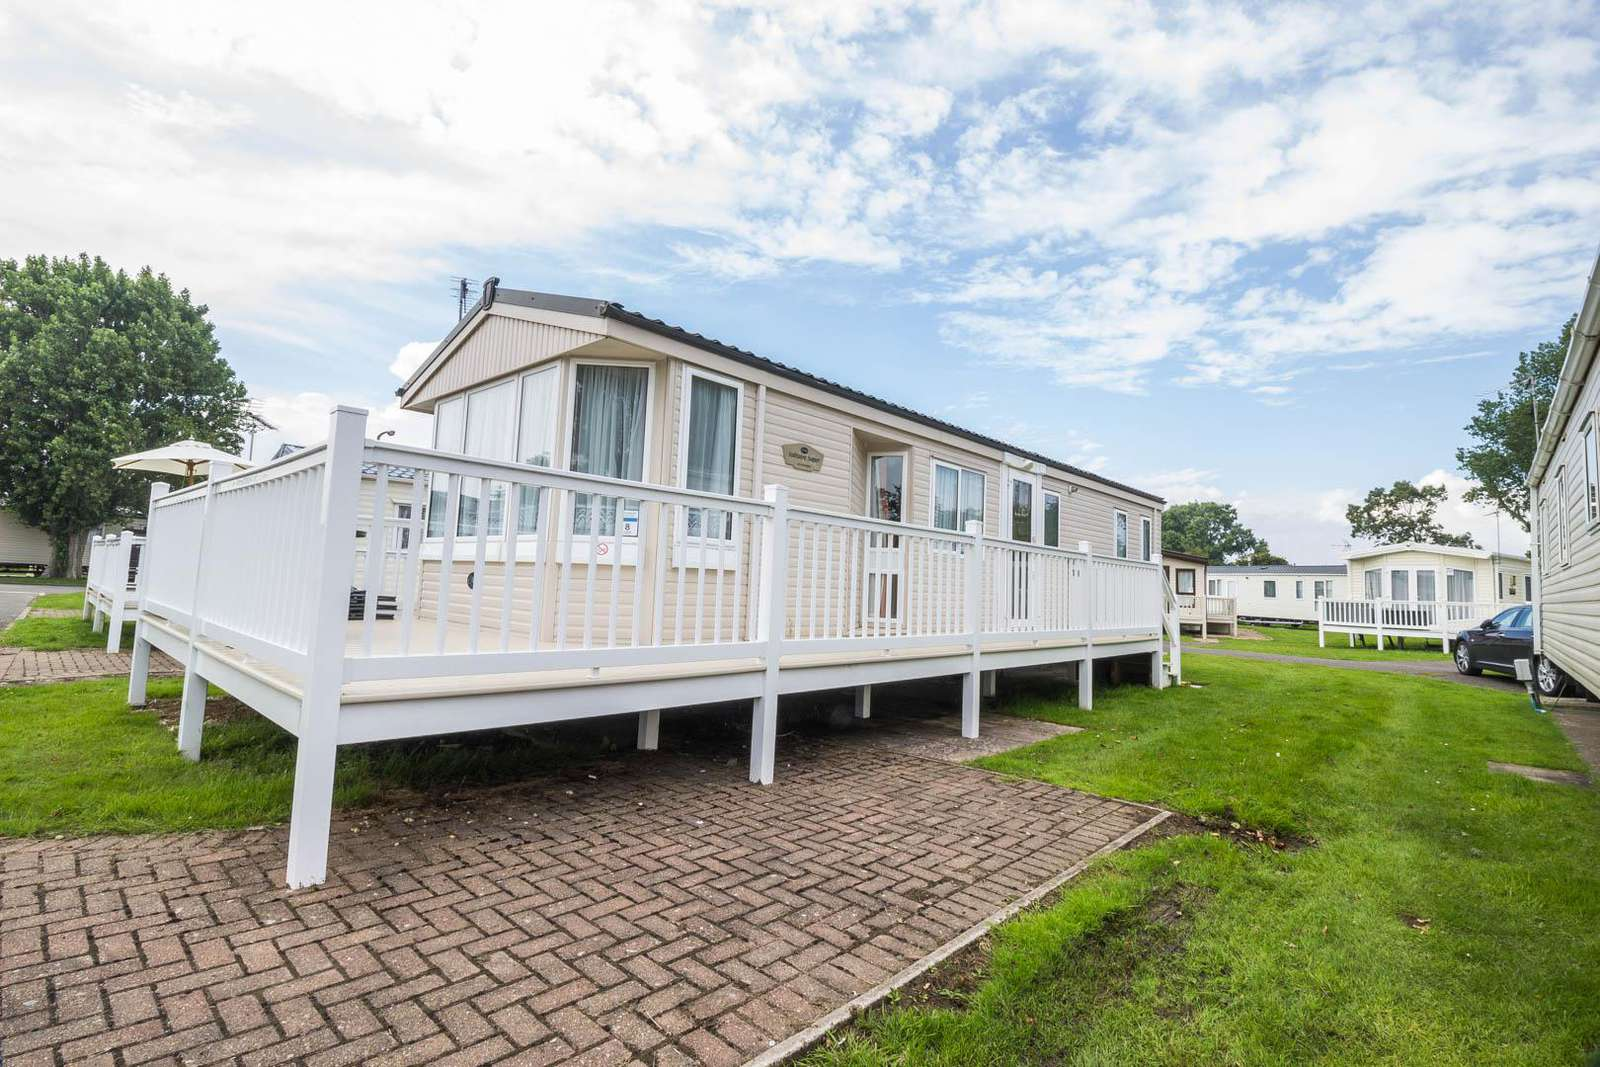 17008WC – Wyndham Court area, 2 bed, 6 berth caravan with decking, D/G & C/H. Ruby rated. - property